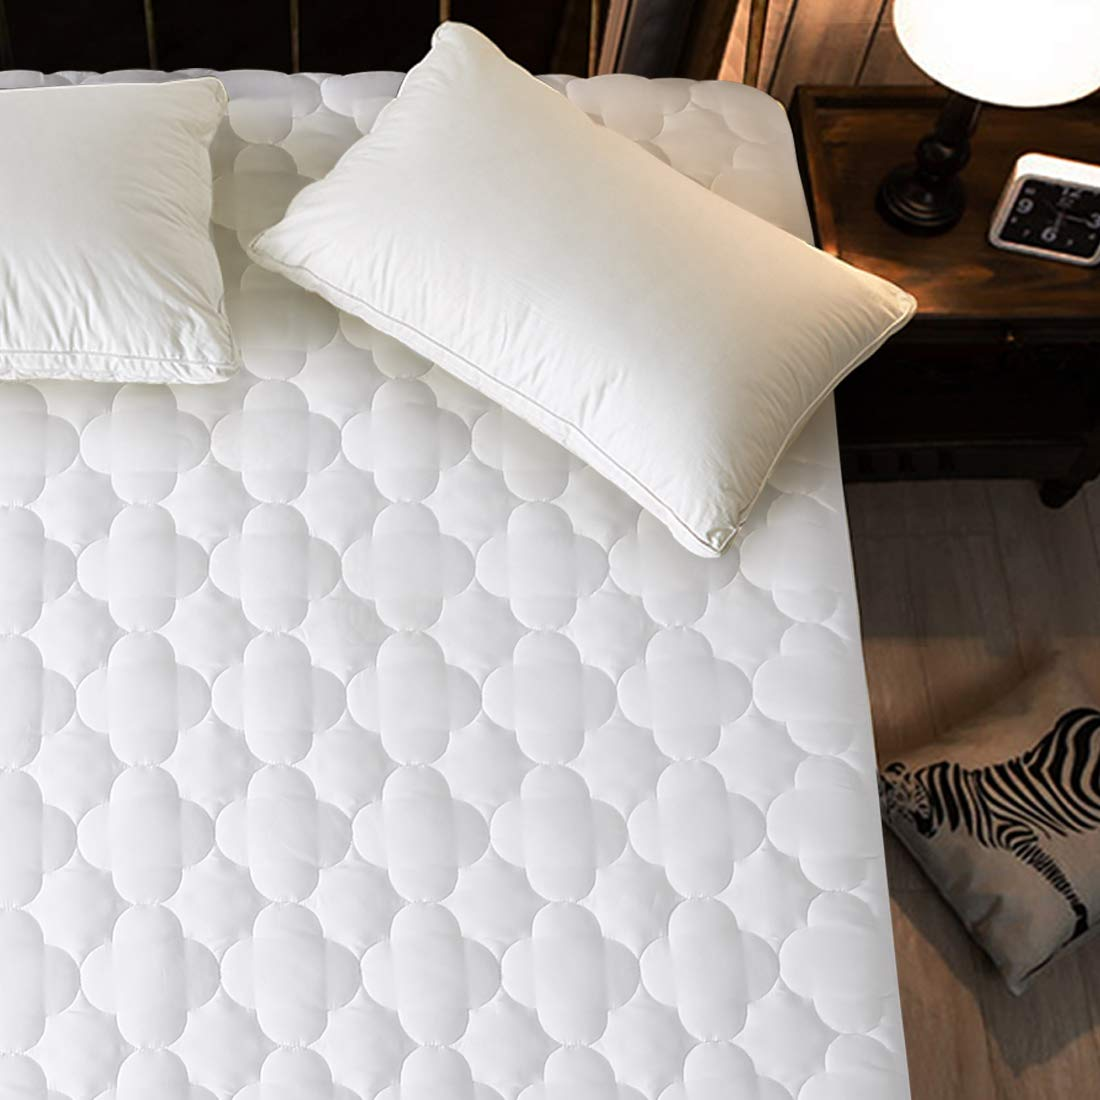 MEROUS Twin Mattress Pad Hypoallergenic Quilted Fitted Cooling Mattress Cover with Deep